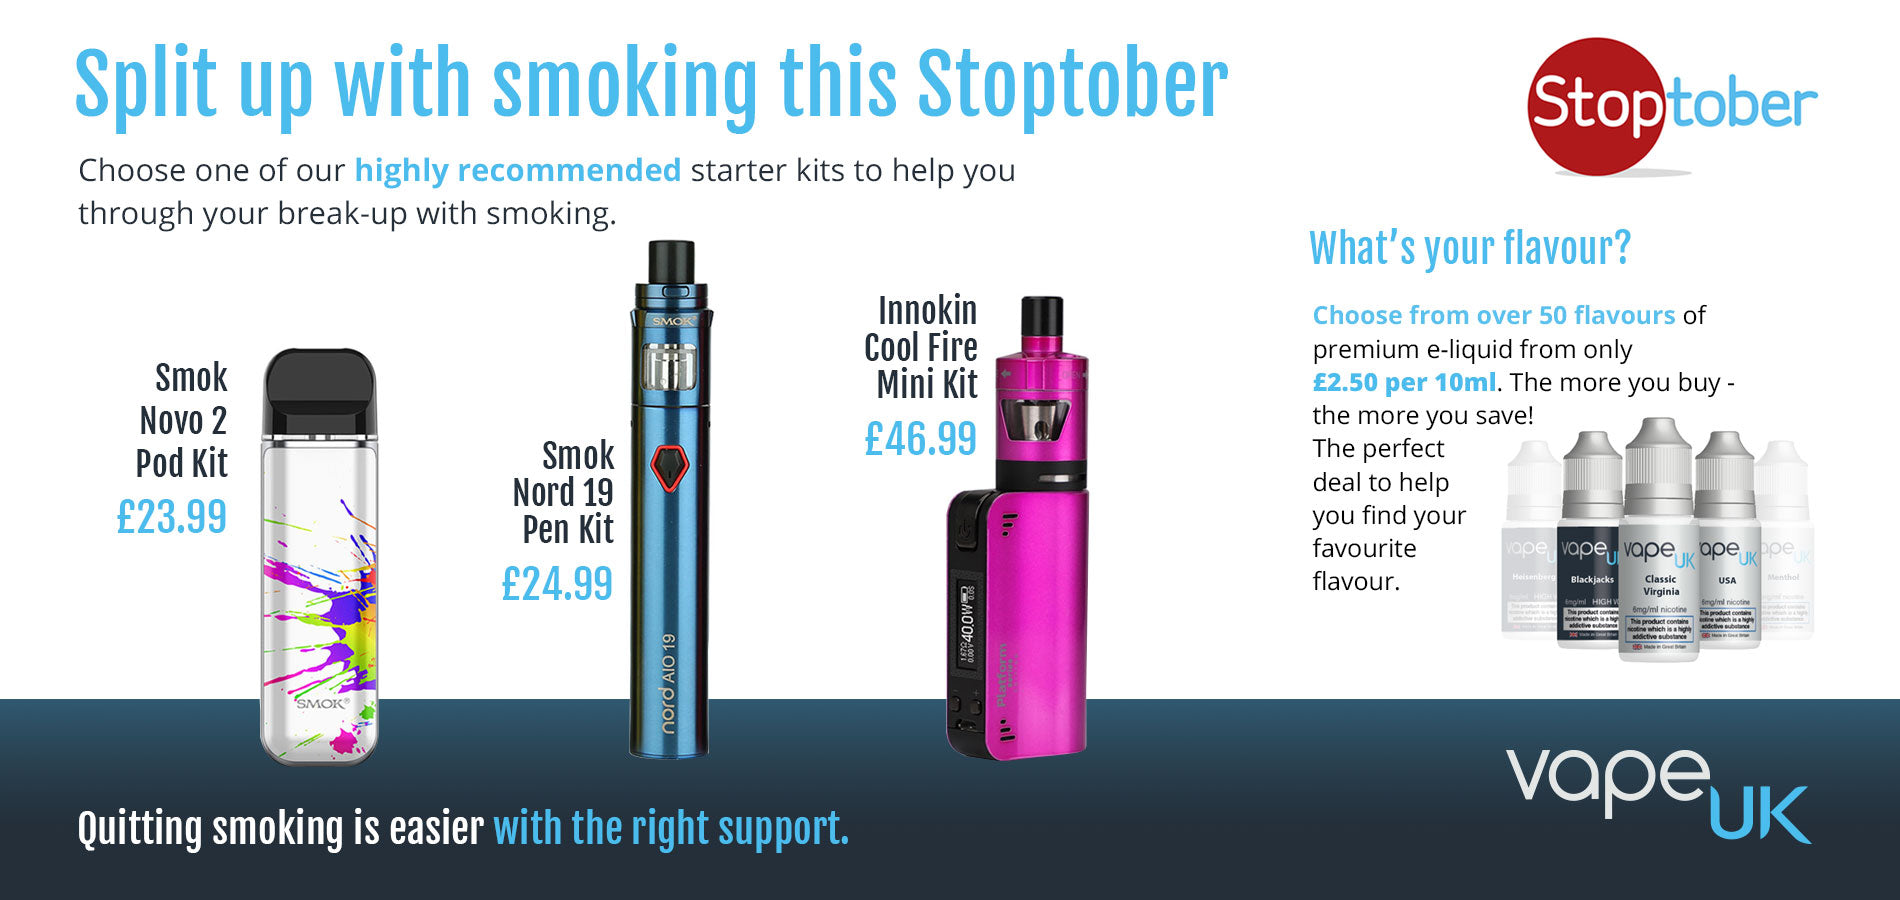 Vape UK Stoptober recommendations